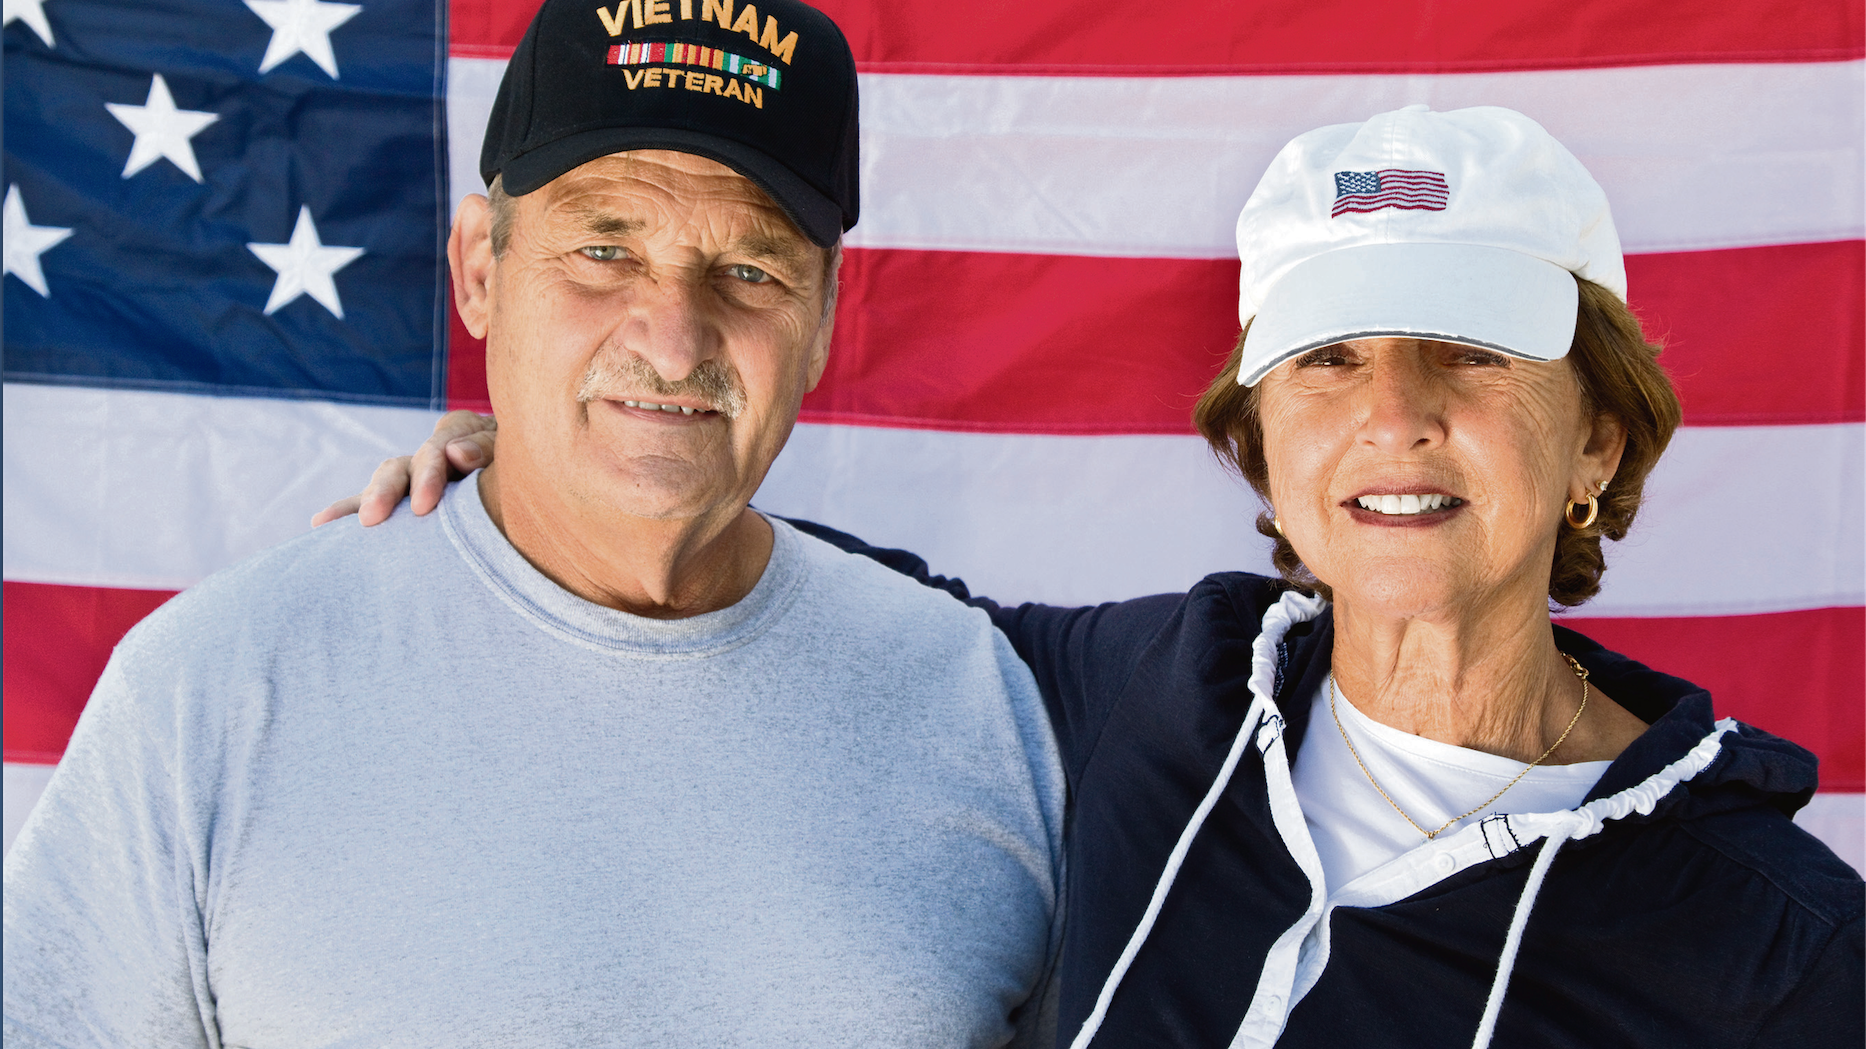 GUIDE TO MEDICARE: Veterans health care and Medicare can be confusing